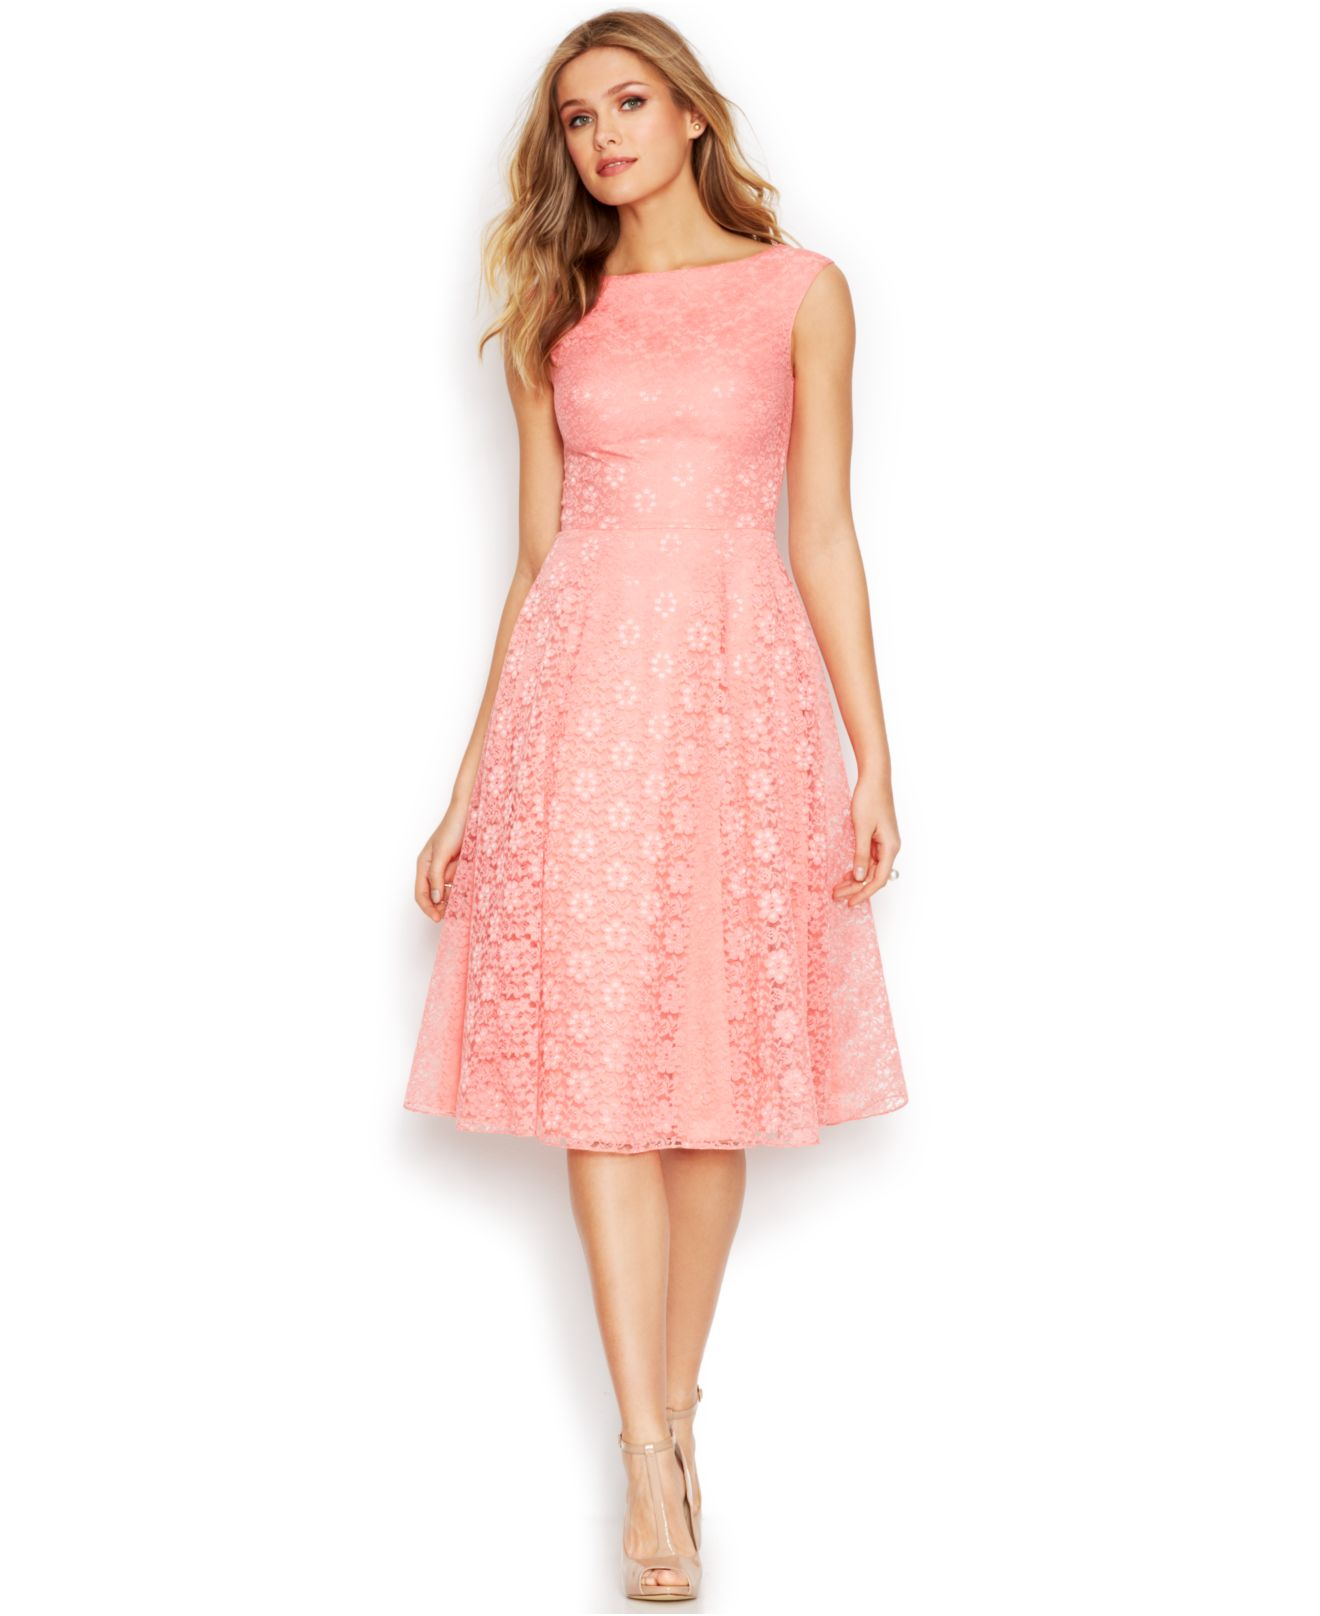 Betsey Johnson Floral Lace Tea Length Dress In Pink Lyst